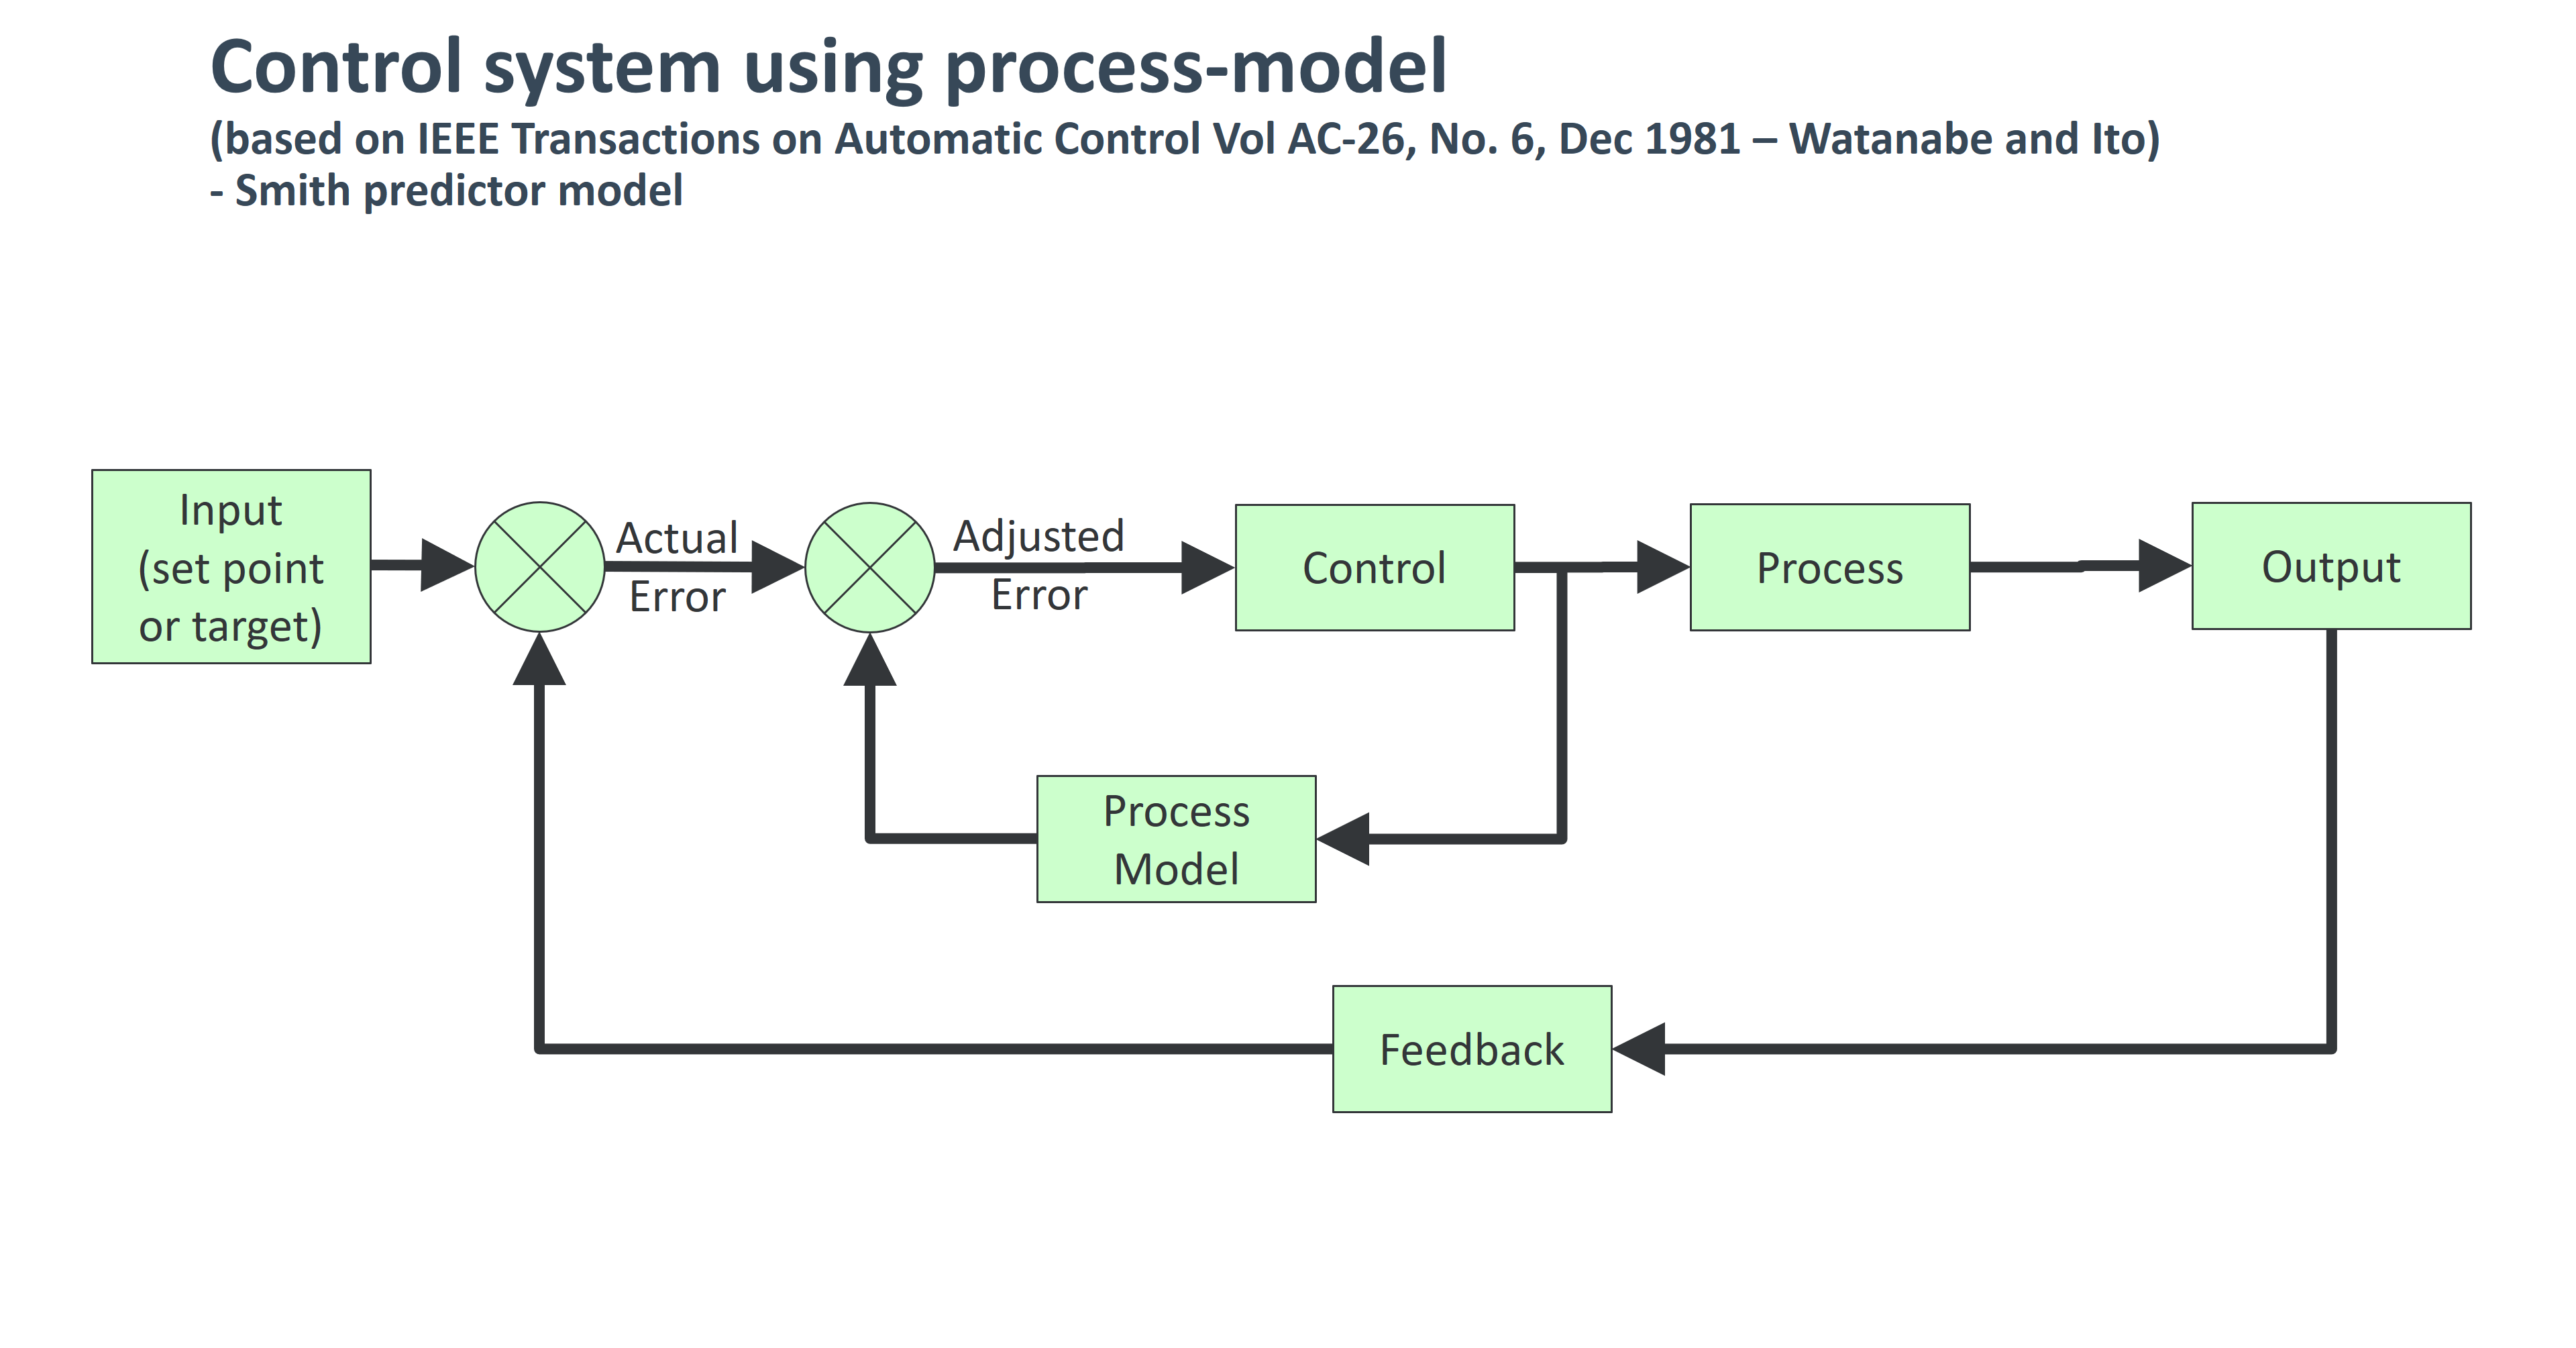 Control system using process-model